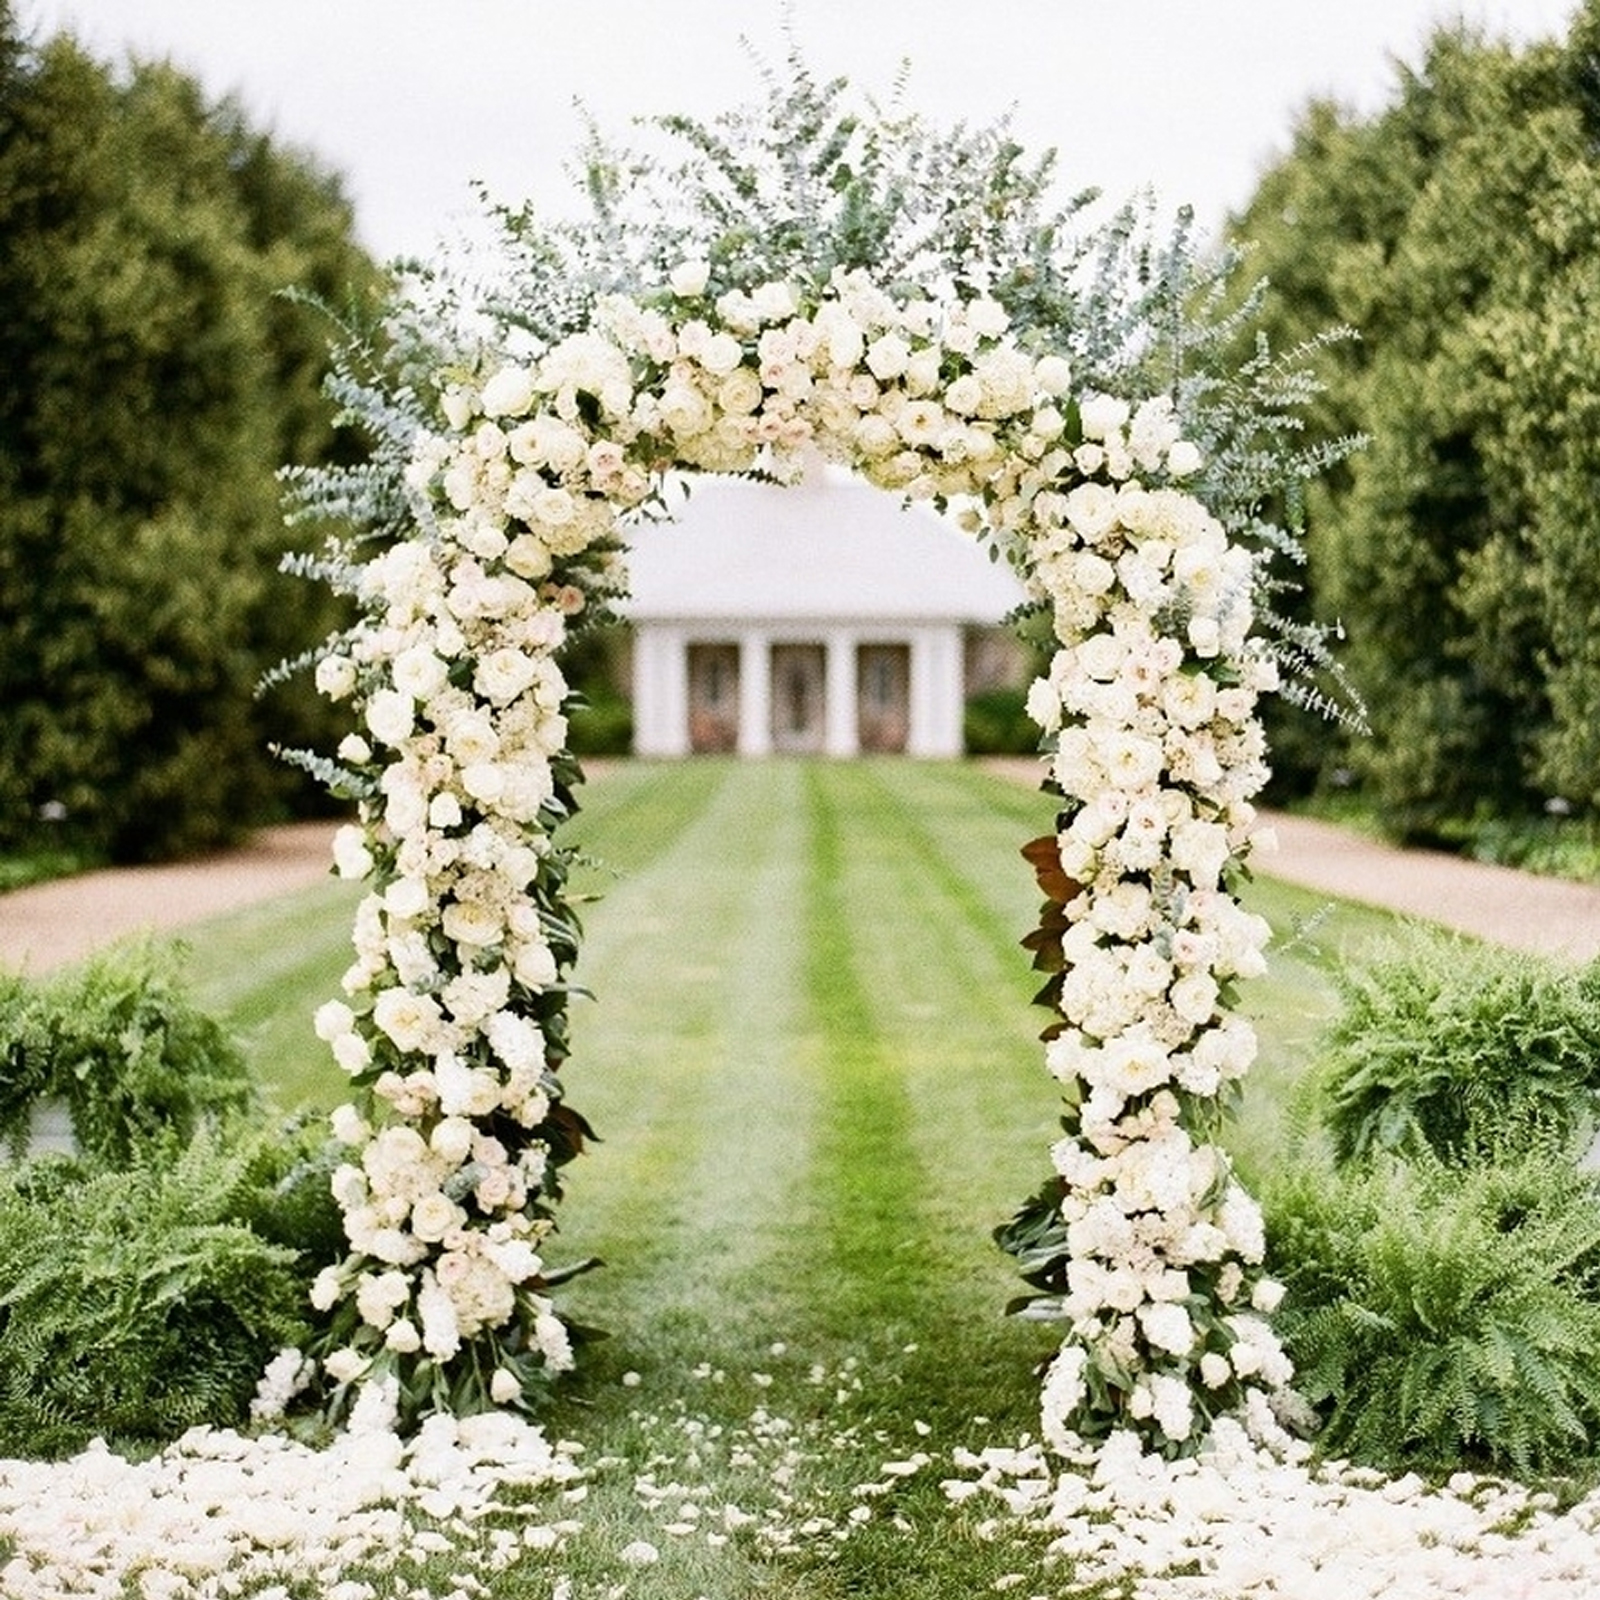 Wedding Arch Decoration Ideas: 7.5 Ft White Metal Arch Wedding Garden Bridal Party